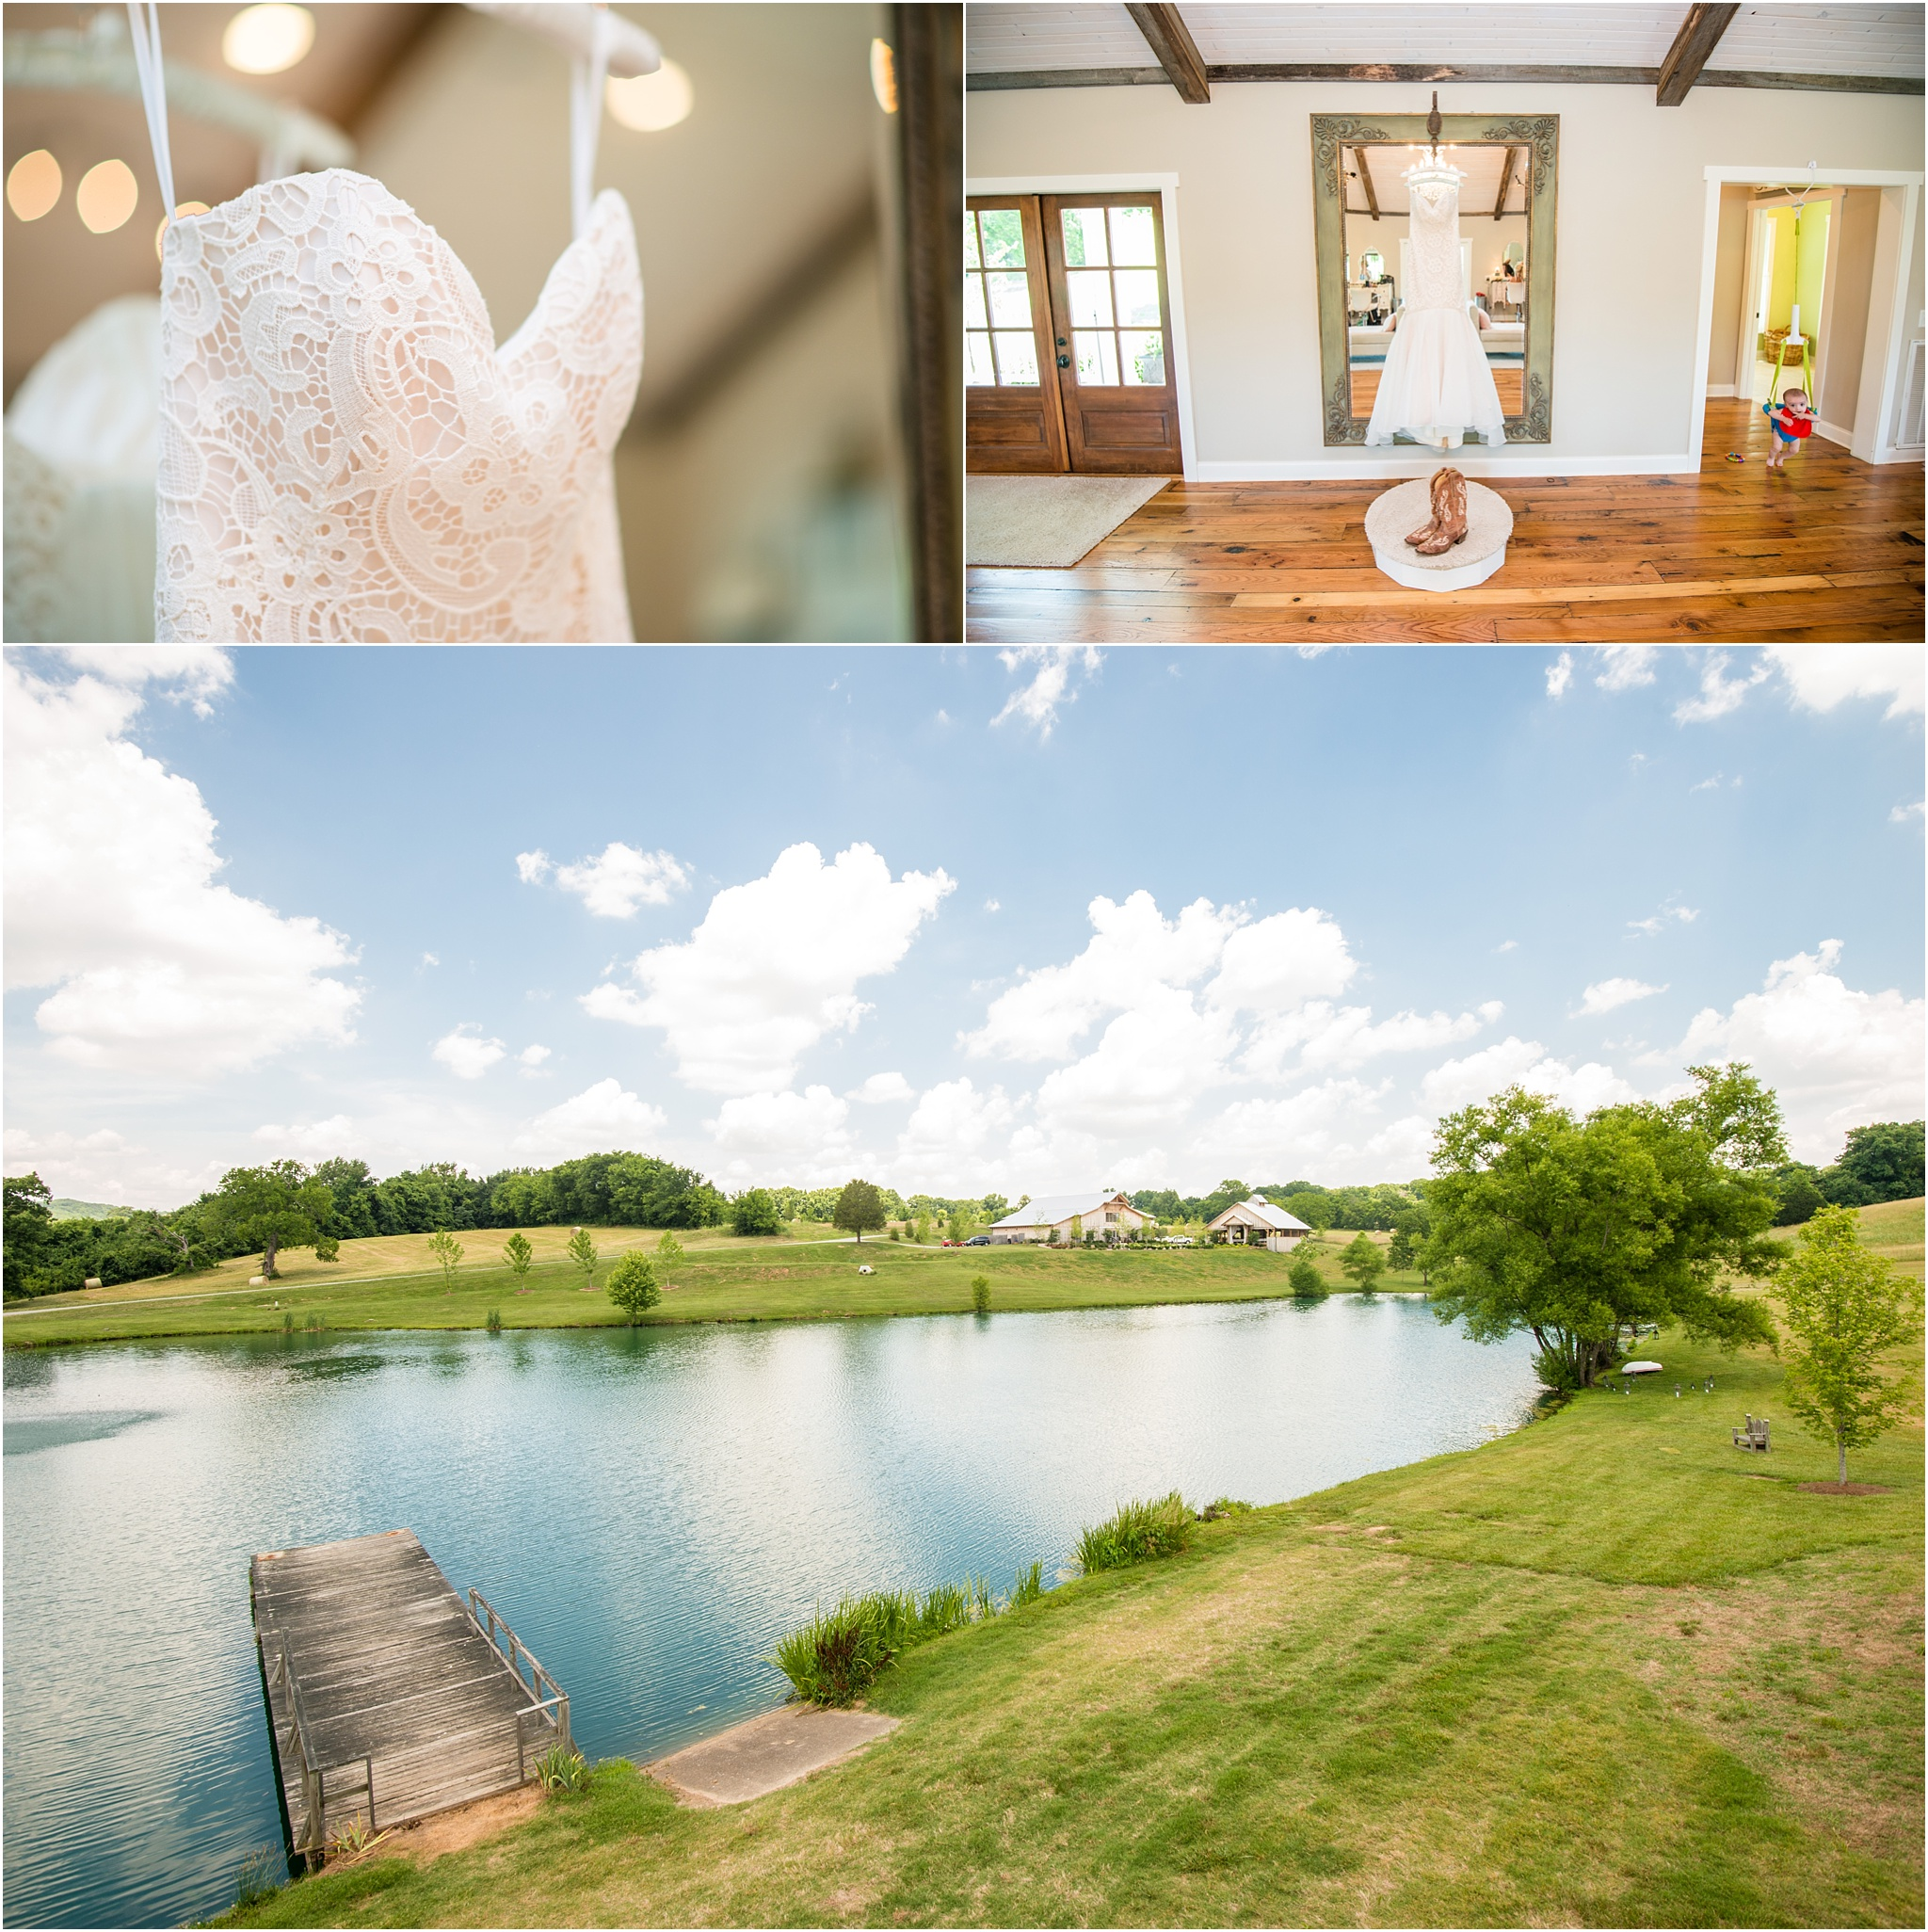 Greg Smit Photography Nashville wedding photographer Mint Springs Farm 1